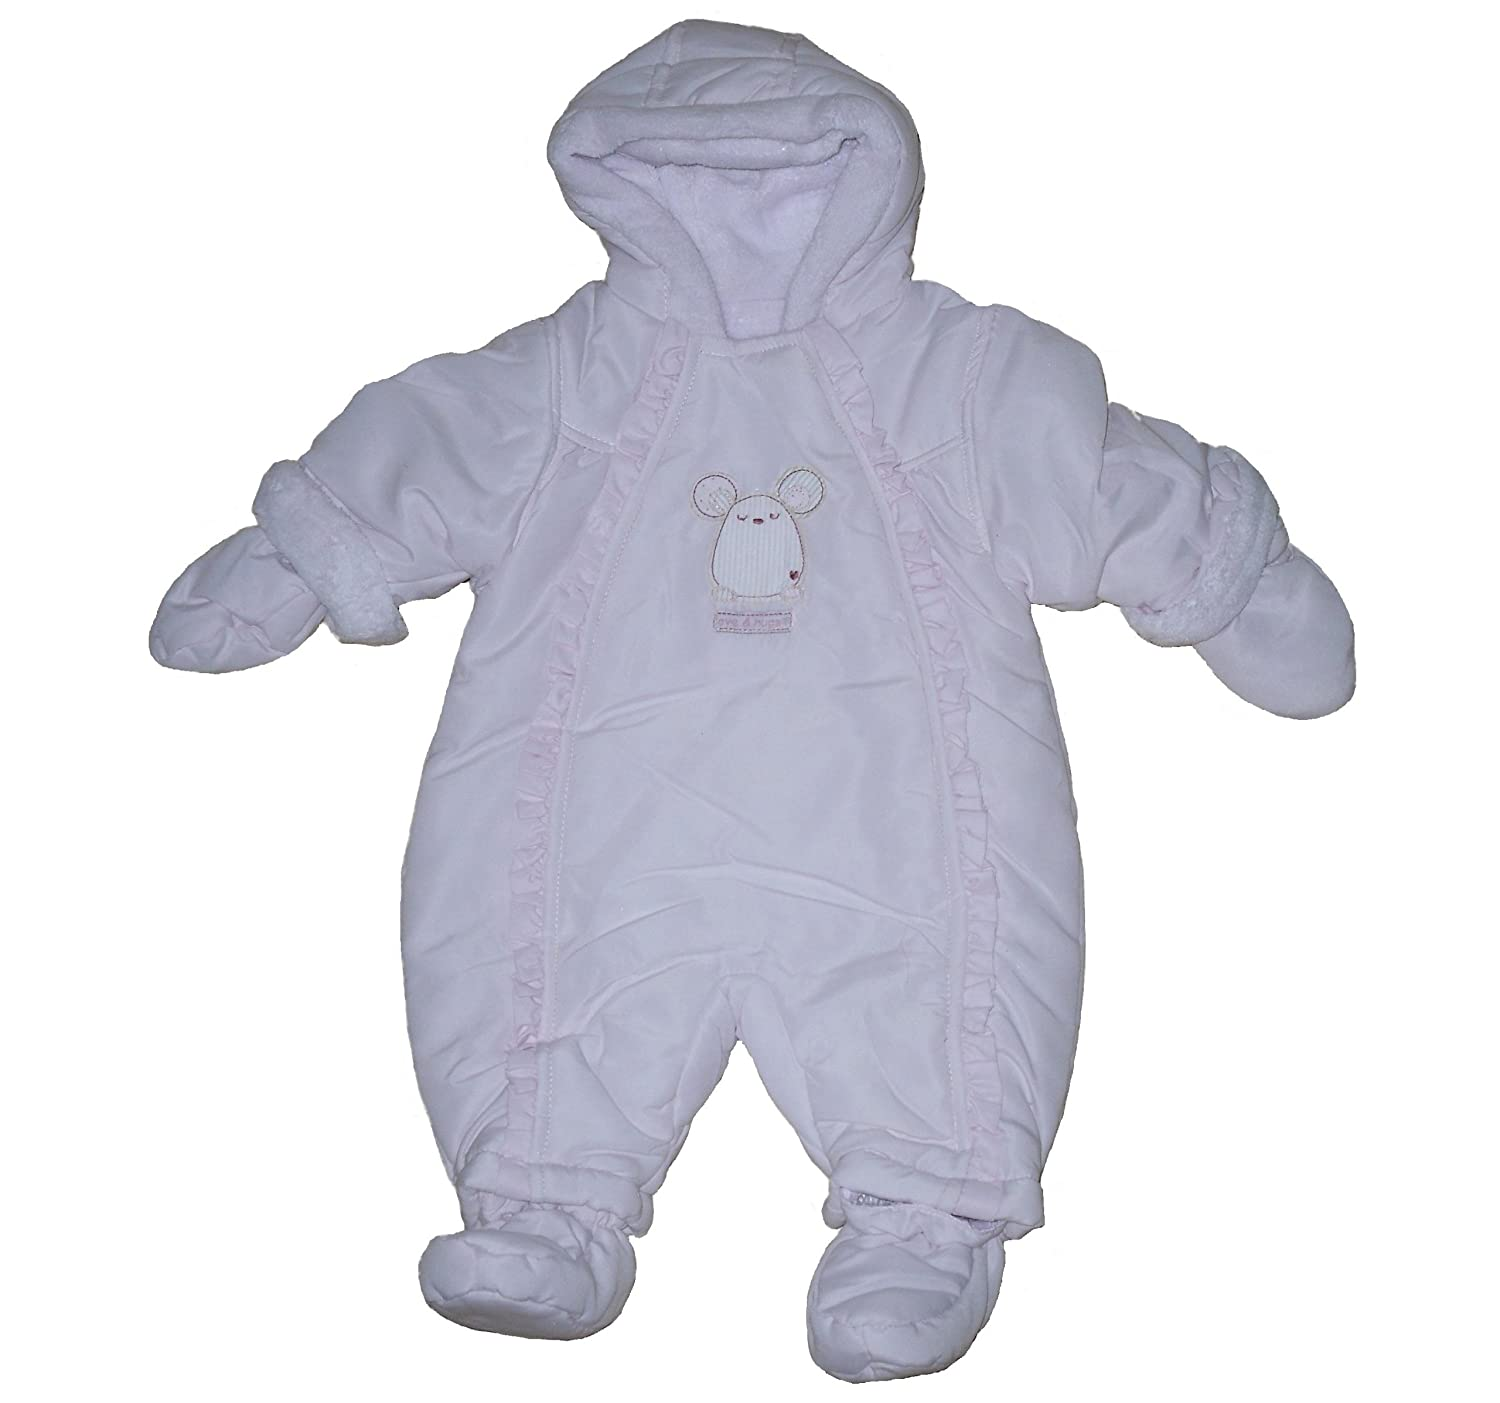 BABY GIRLS SNOWSUIT EX MOTHERCARE NEWBORN UPTO 18 MONTHS NEWBORN